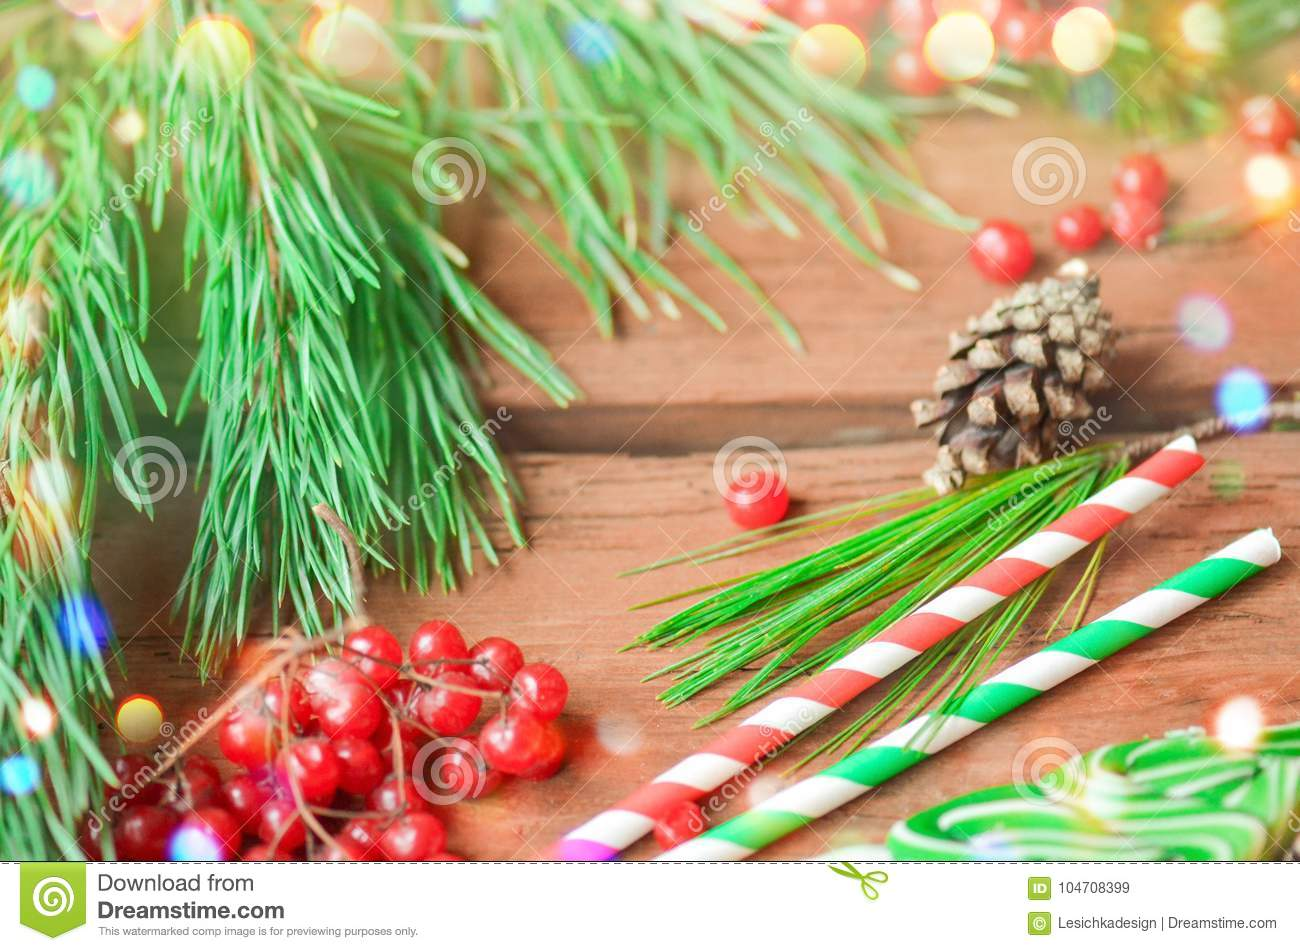 Multicolored Spiral Straw Cocktails Stock Image - Image of cold ...